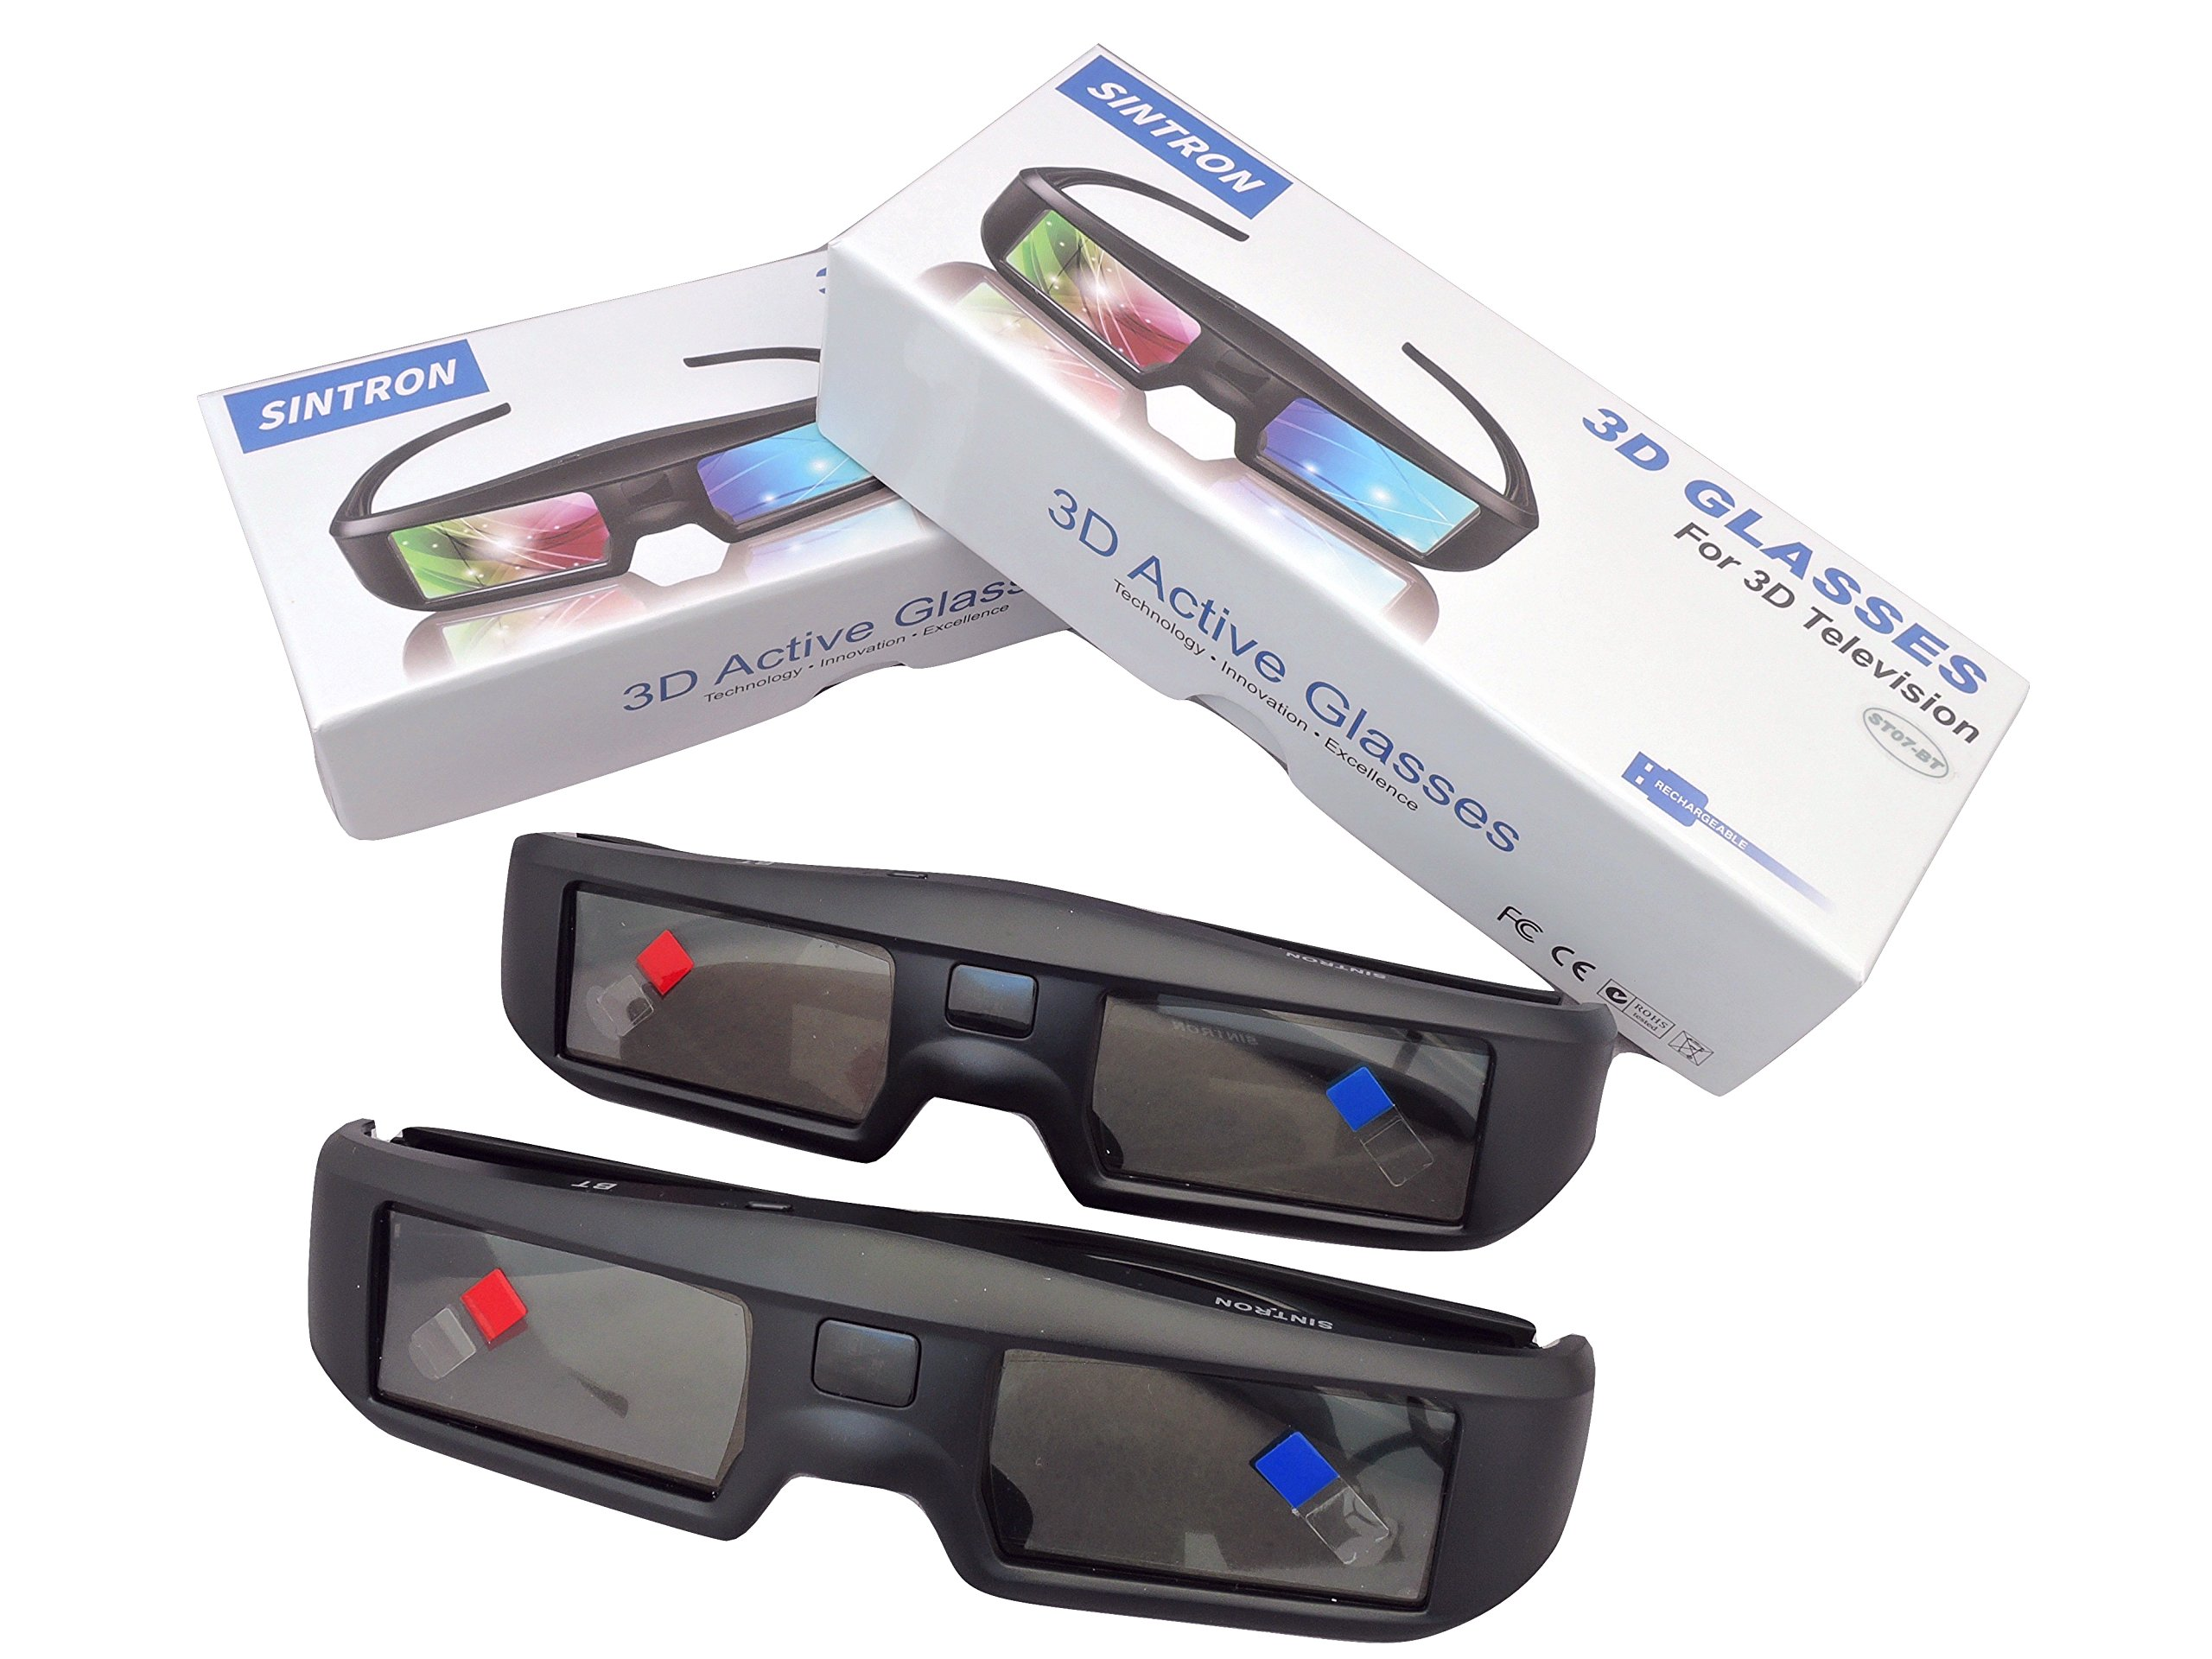 2X 3D Active Shutter Glasses Rechargeable - Sintron ST07-BT for RF 3D TV, 3D Glasses for Sony, Panasonic, Samsung 3D TV, Epson 3D projector, Compatible with TDG-BT500A TDG-BT400A TY-ER3D5MA TY-ER3D4MA by Sintron (Image #2)